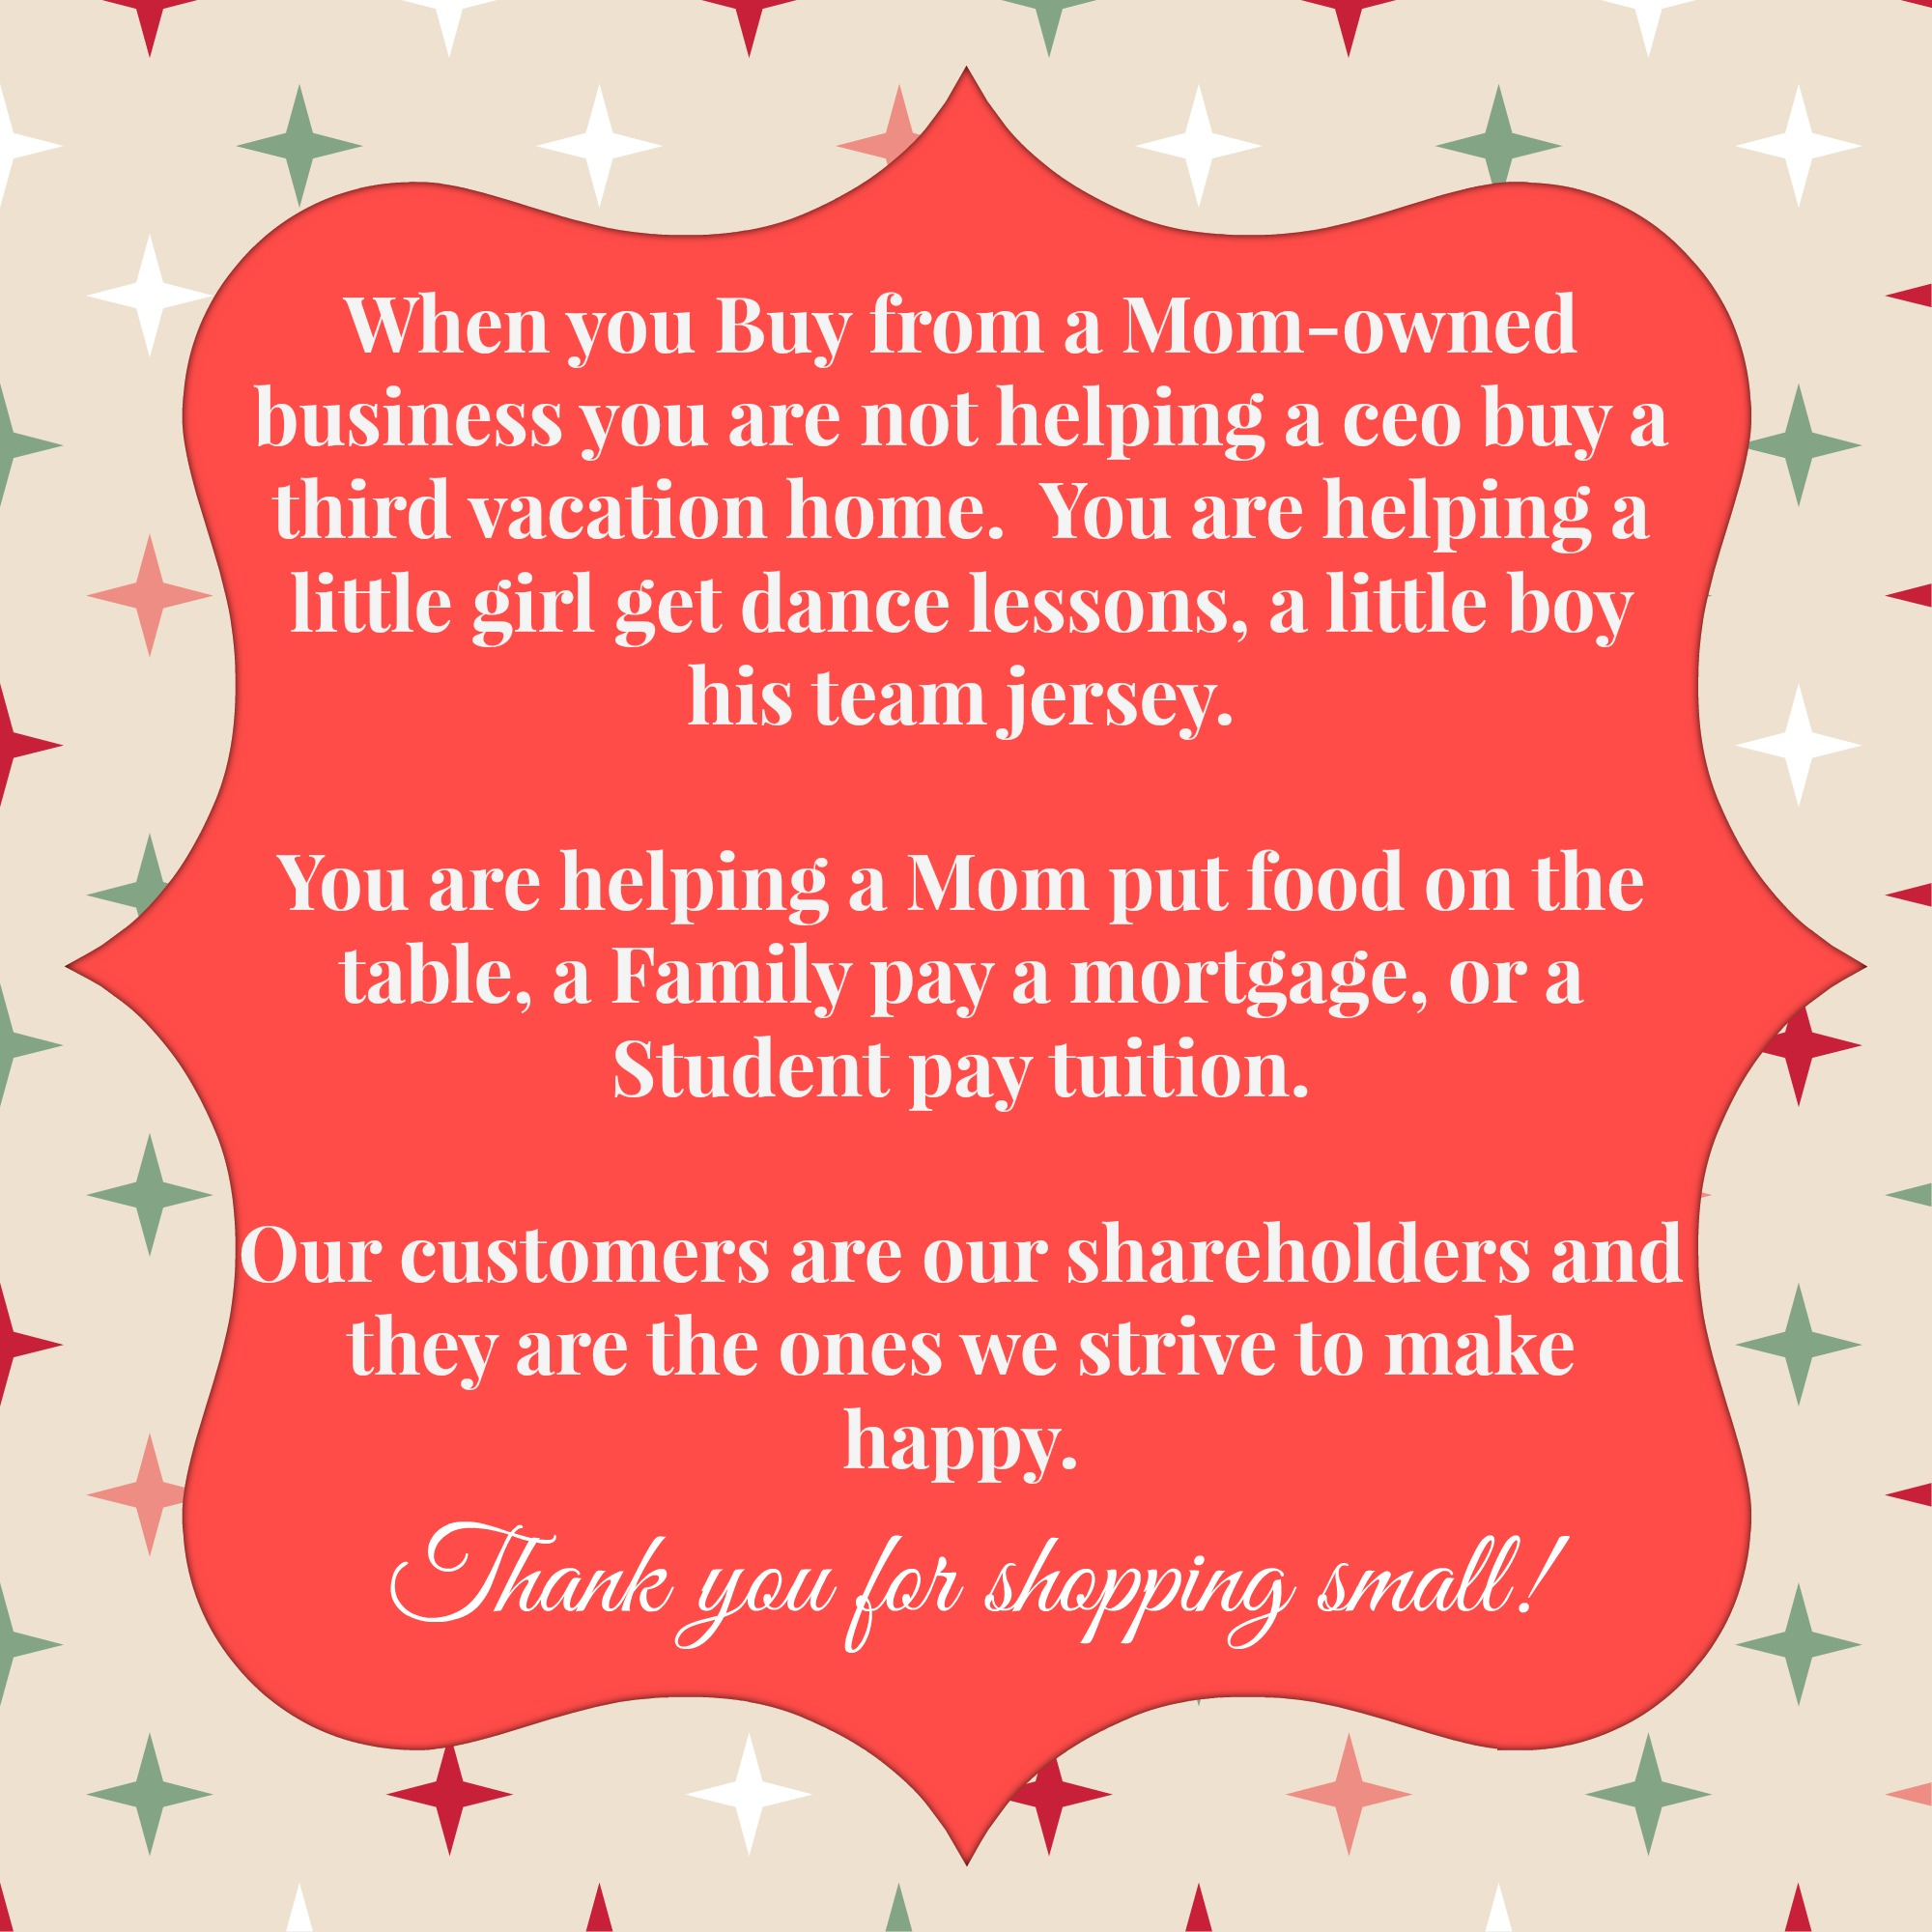 I Have Put Together Some Of My Favorite And Own Products From Mom Owned Businesses To Share With You Hope Enjoy Them Consider Ping Small